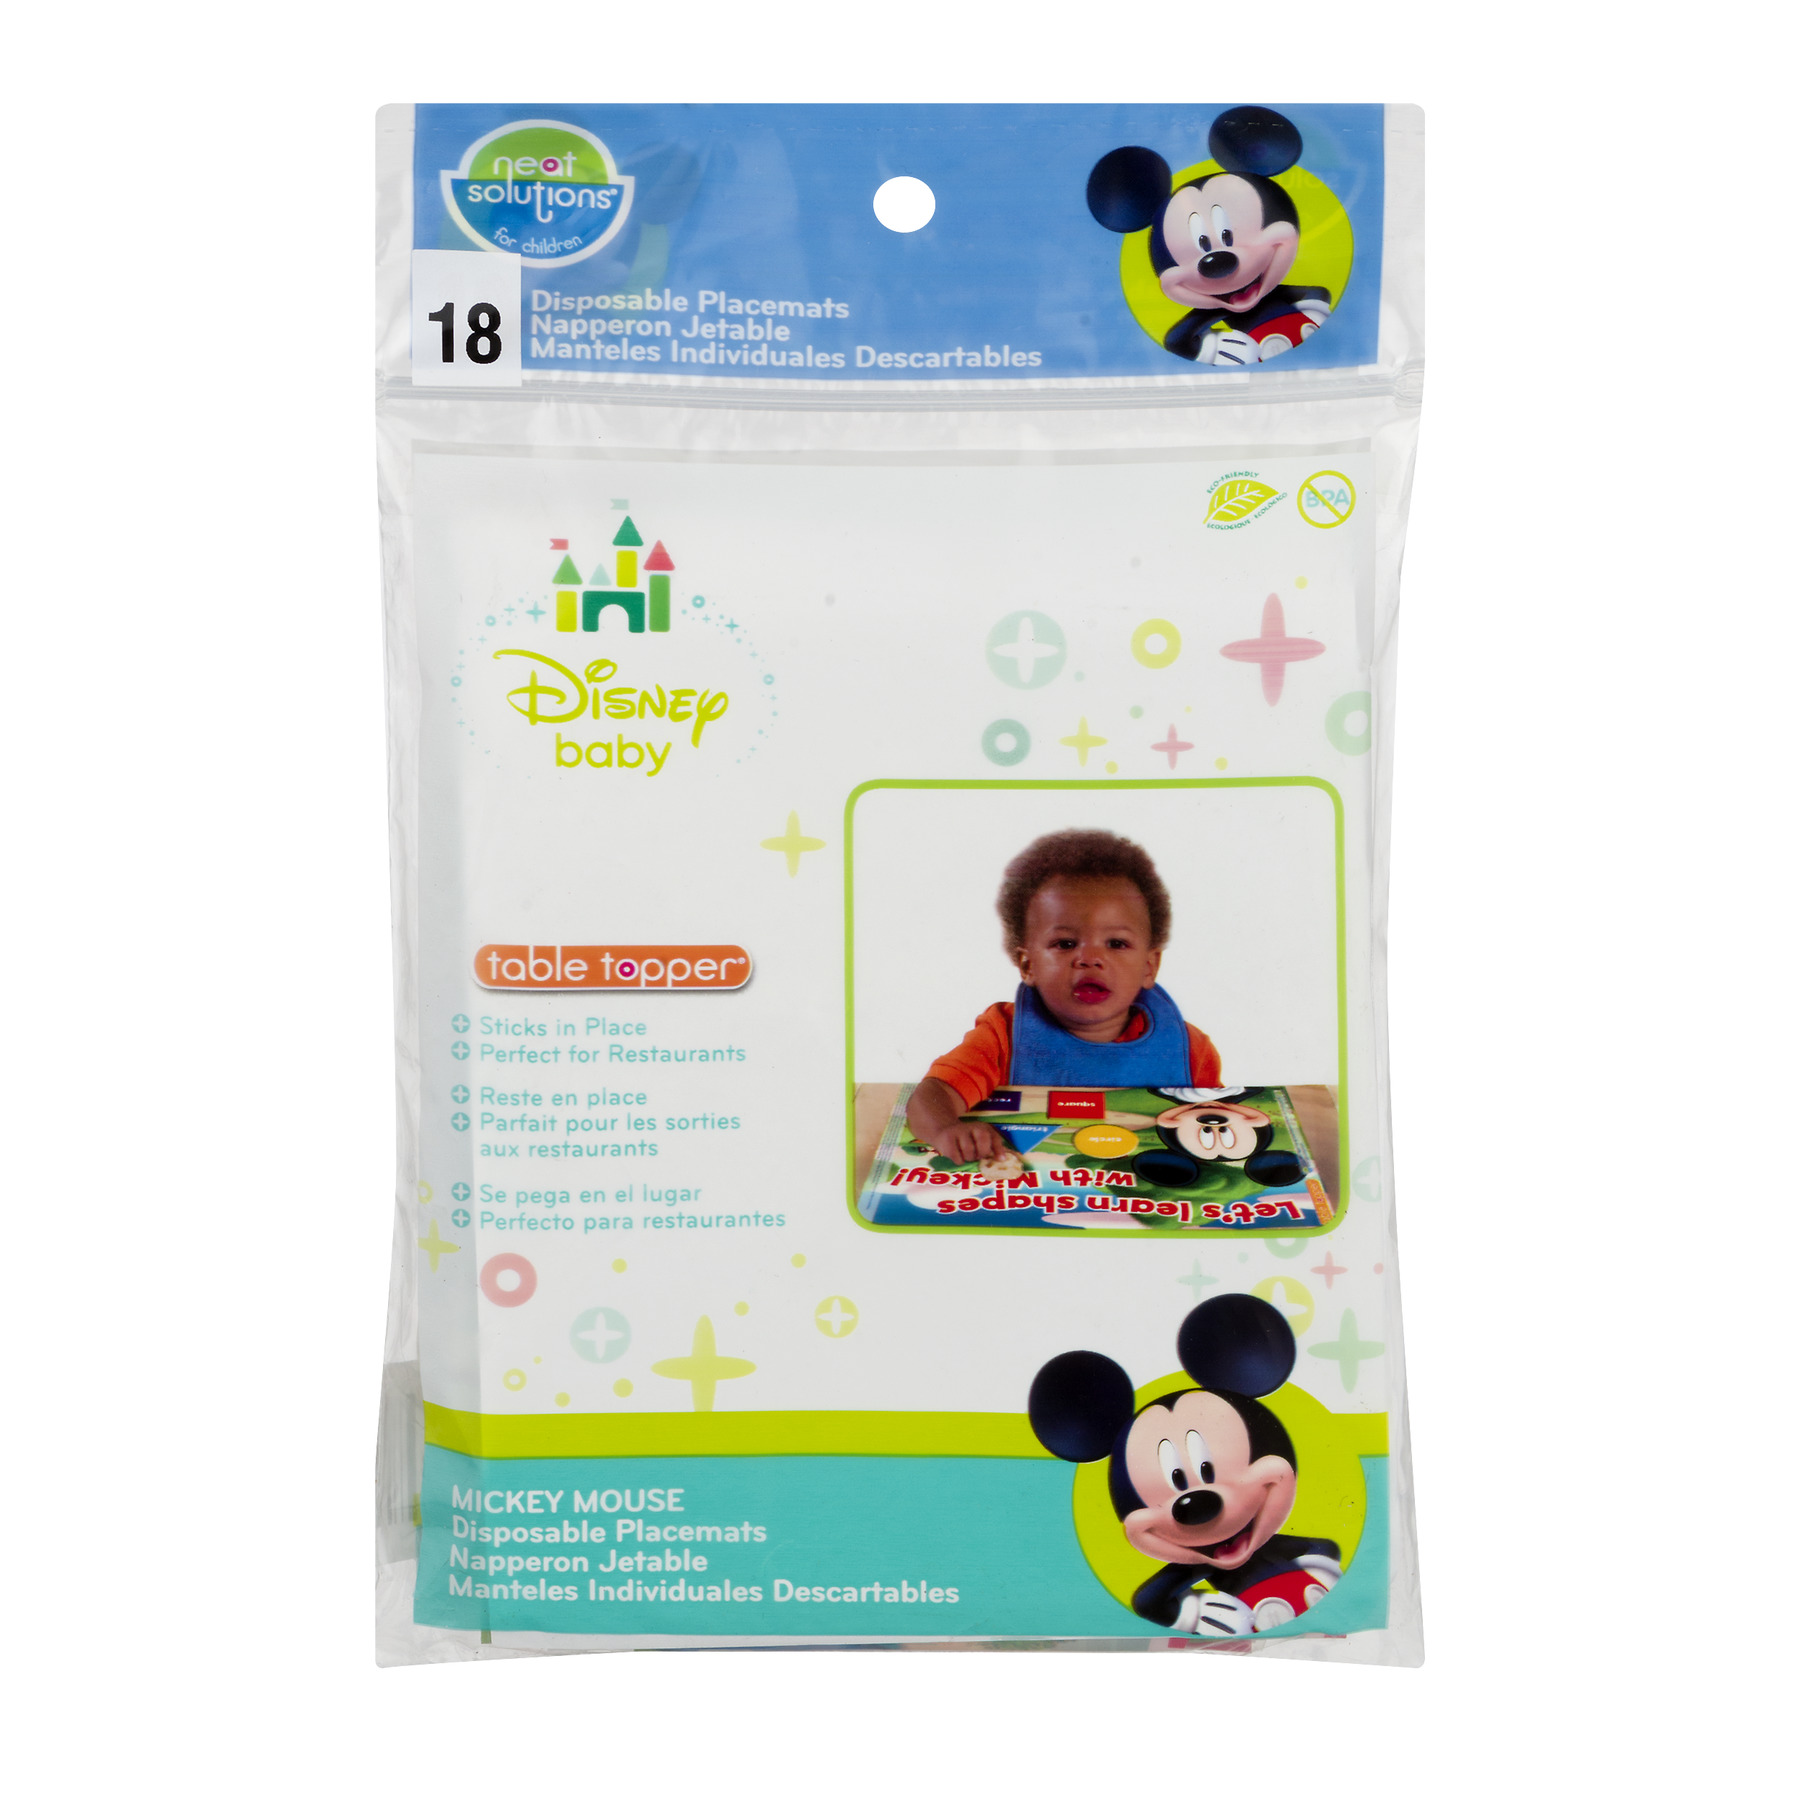 Disney Neat Solutions Table Topper Disposable Placemats for Children, 18 Count